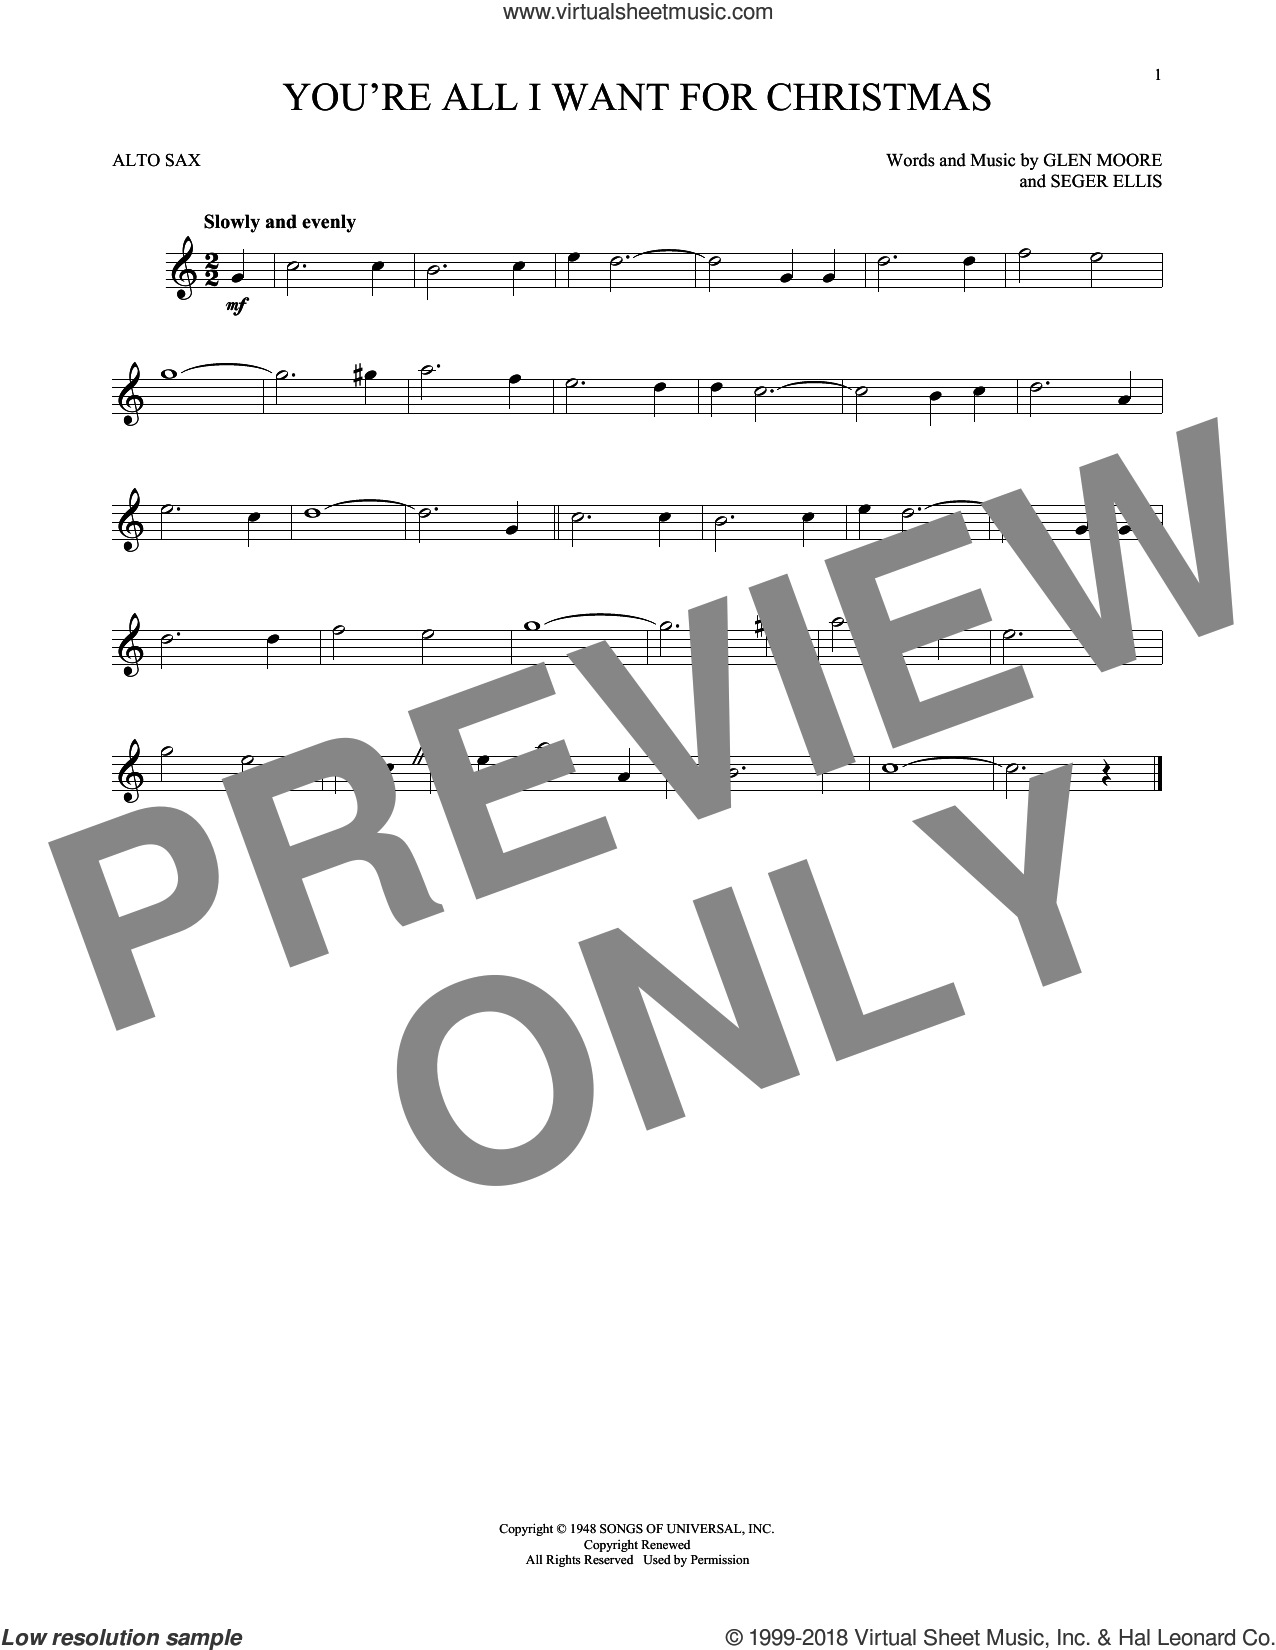 You're All I Want For Christmas sheet music for alto saxophone solo by Glen Moore, Frank Gallagher, Glen Moore & Seger Ellis and Seger Ellis, intermediate skill level